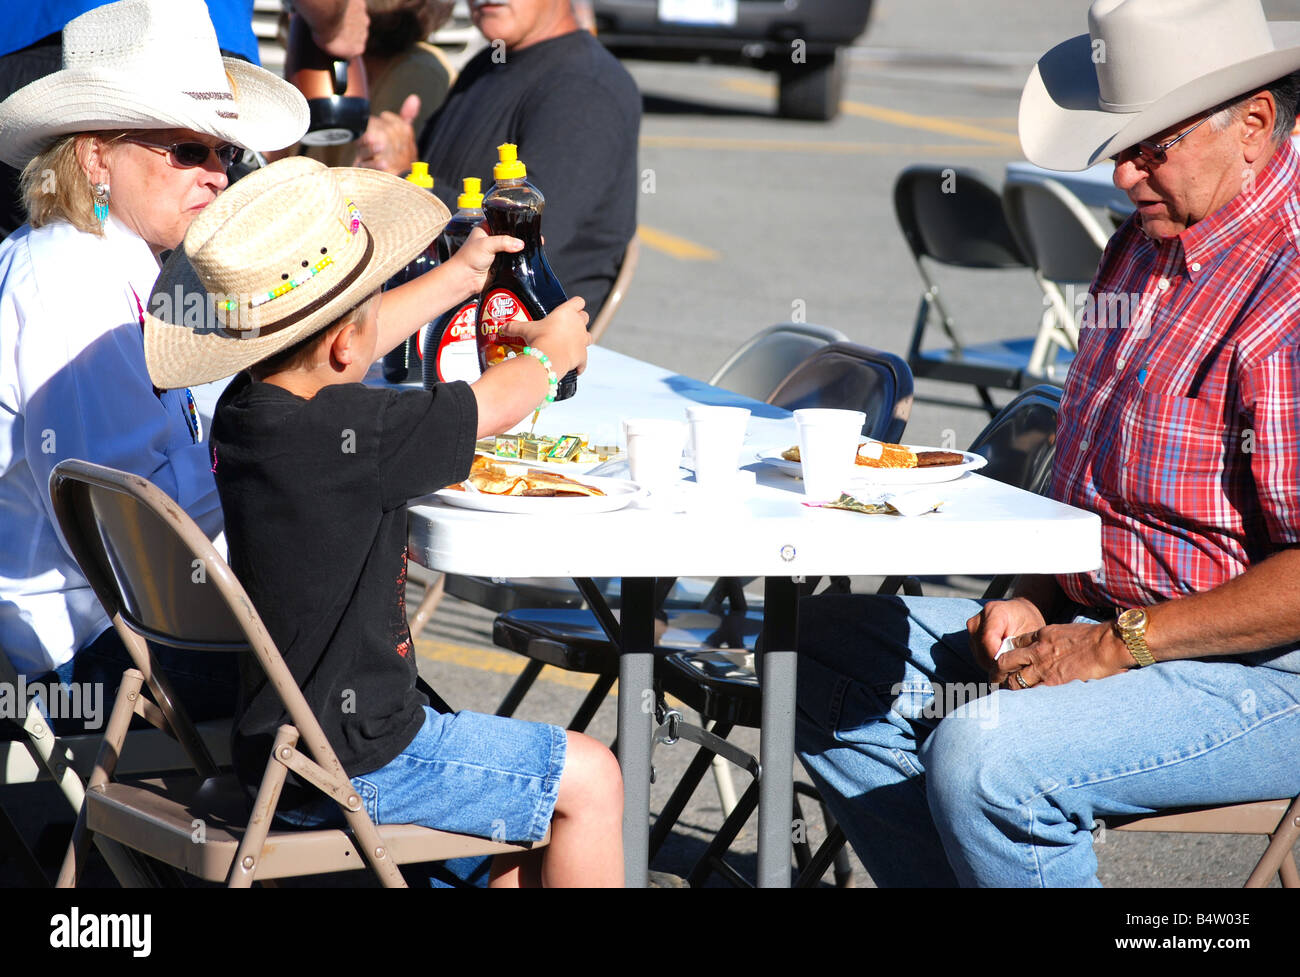 A cowboy and his wife eating pancakes with their grandson at a rotary club pancake breakfast - Stock Image